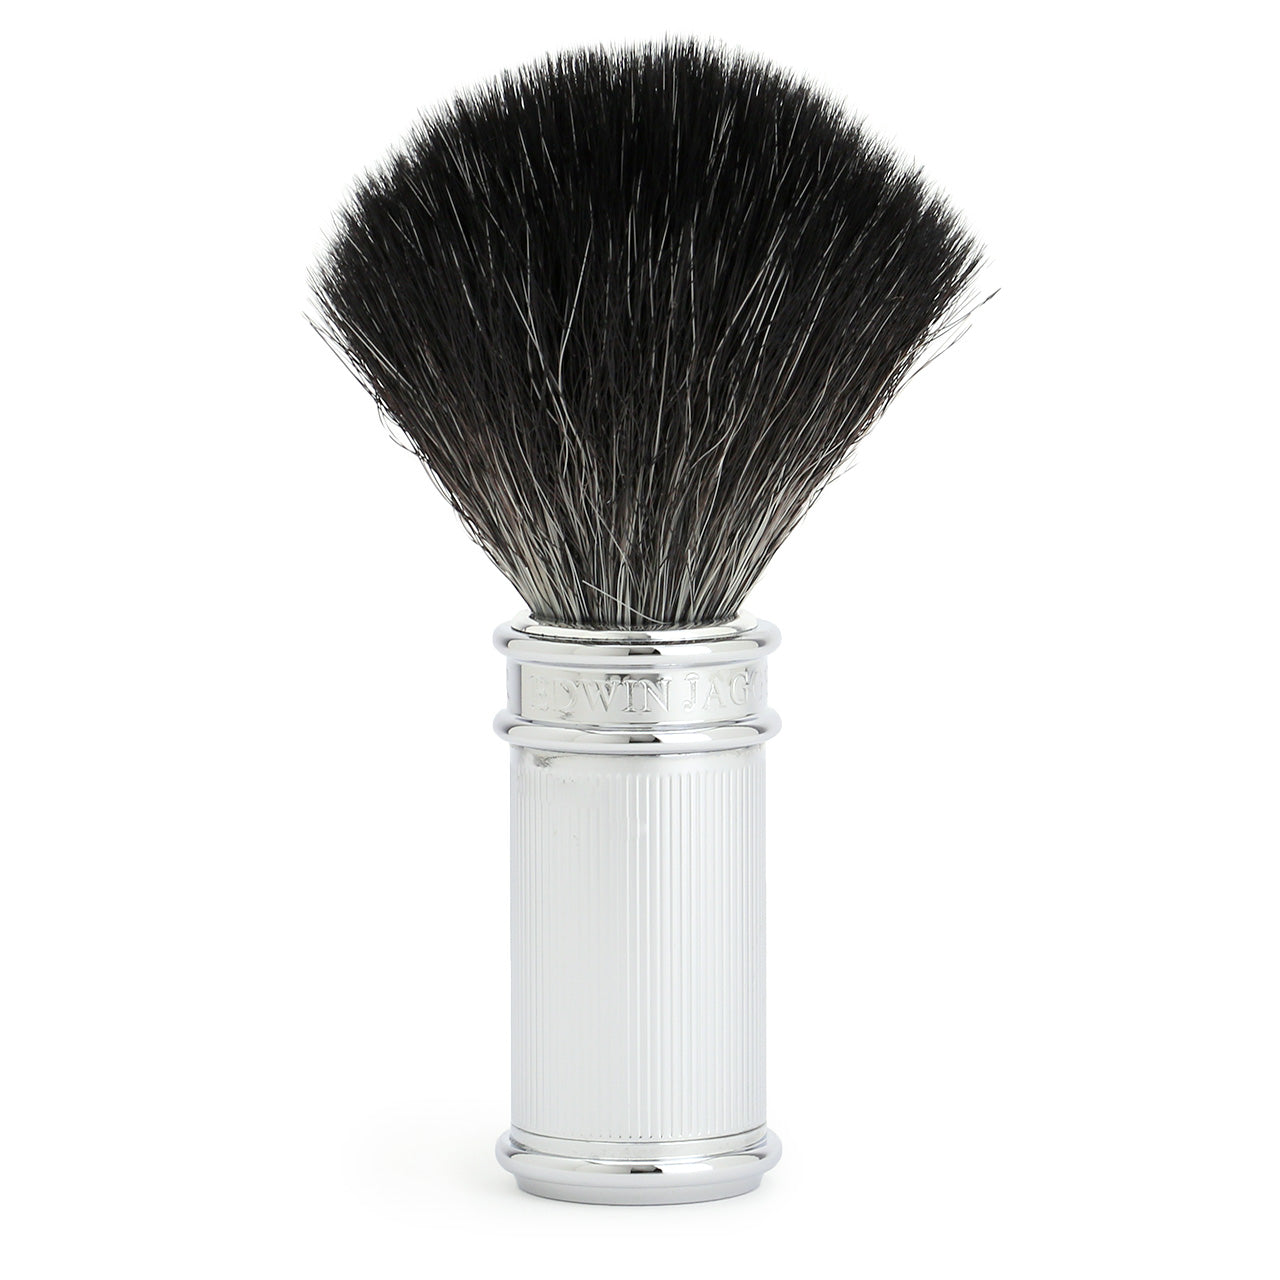 Edwin Jagger Chrome Lined Synthetic Shaving Brush